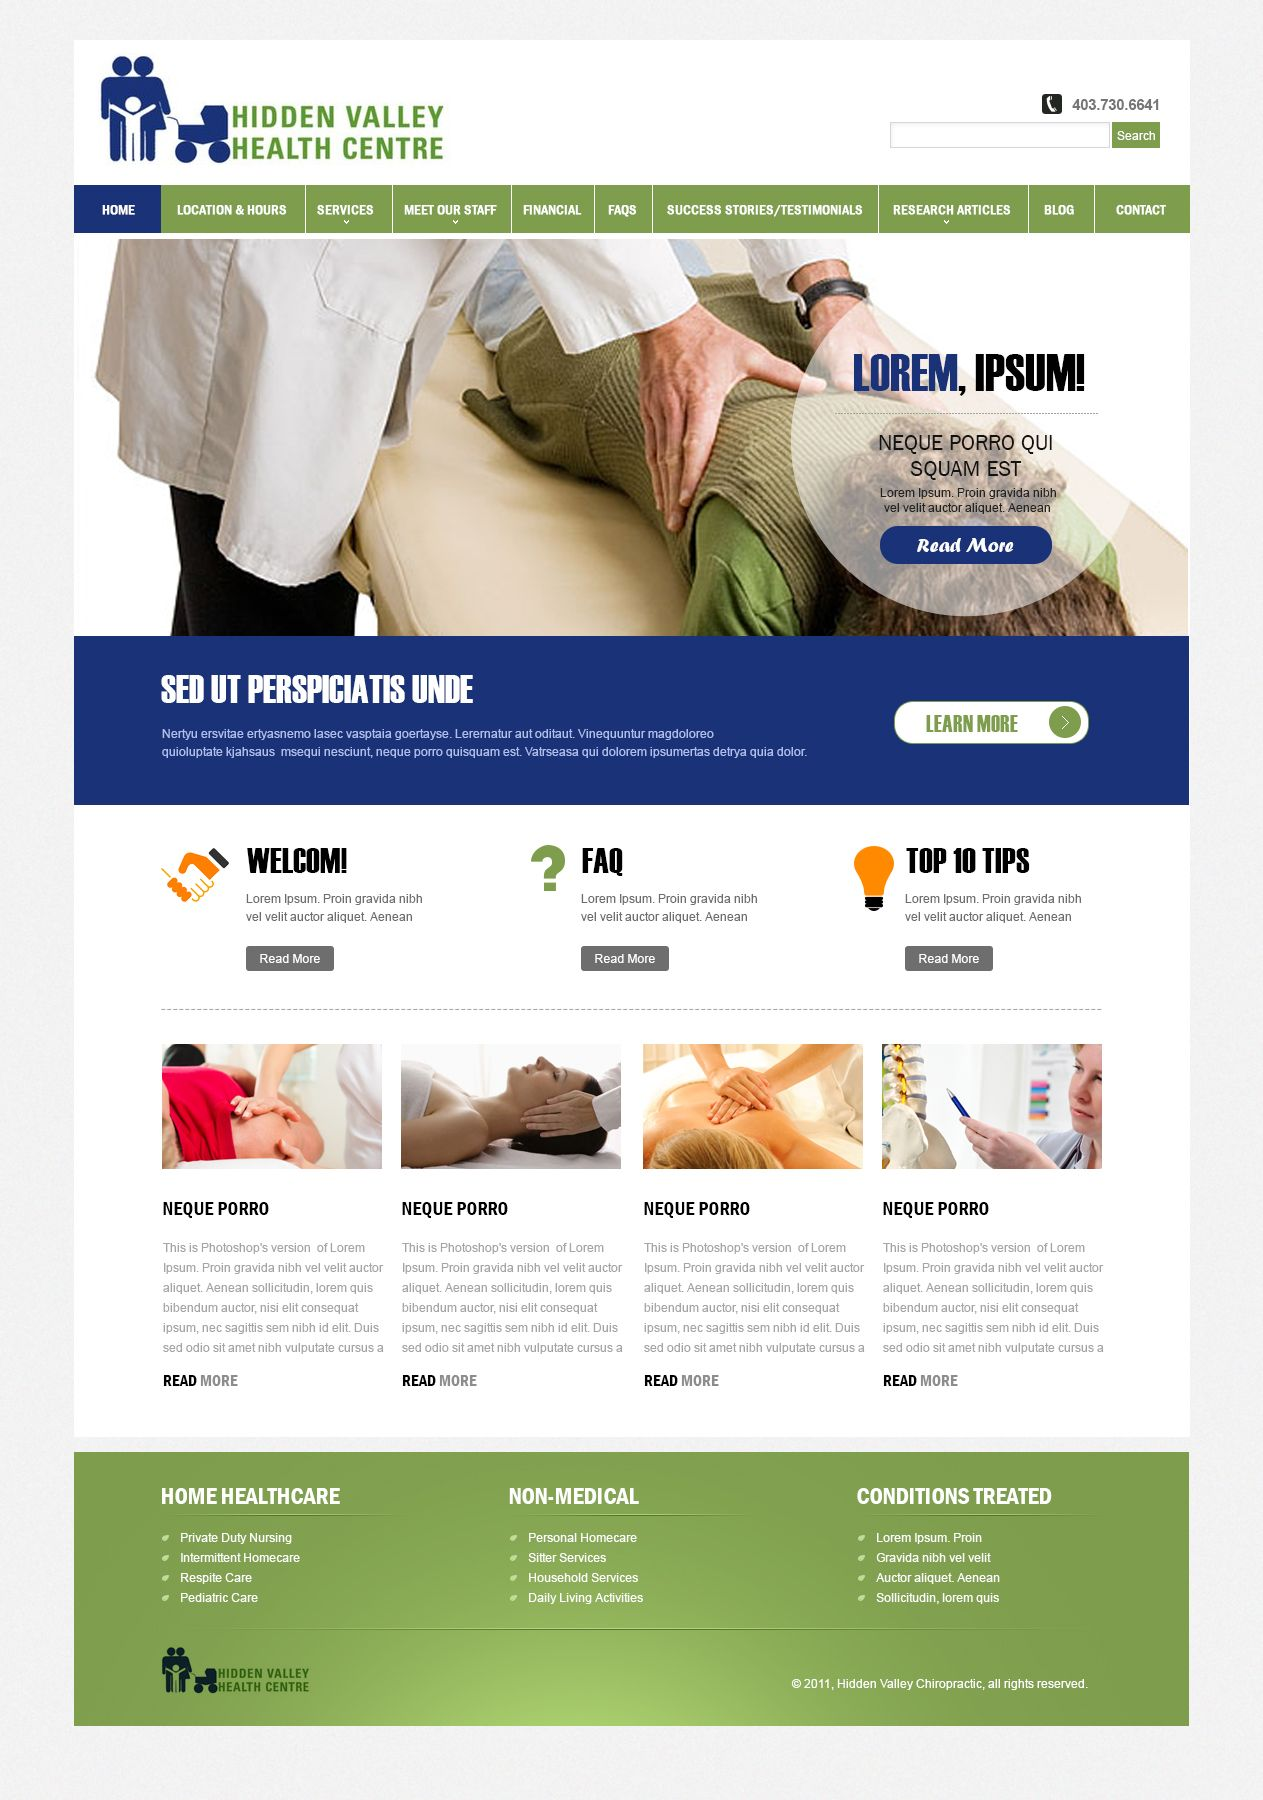 Web design for a health care provider #togonondesign #creativesmartandeffective